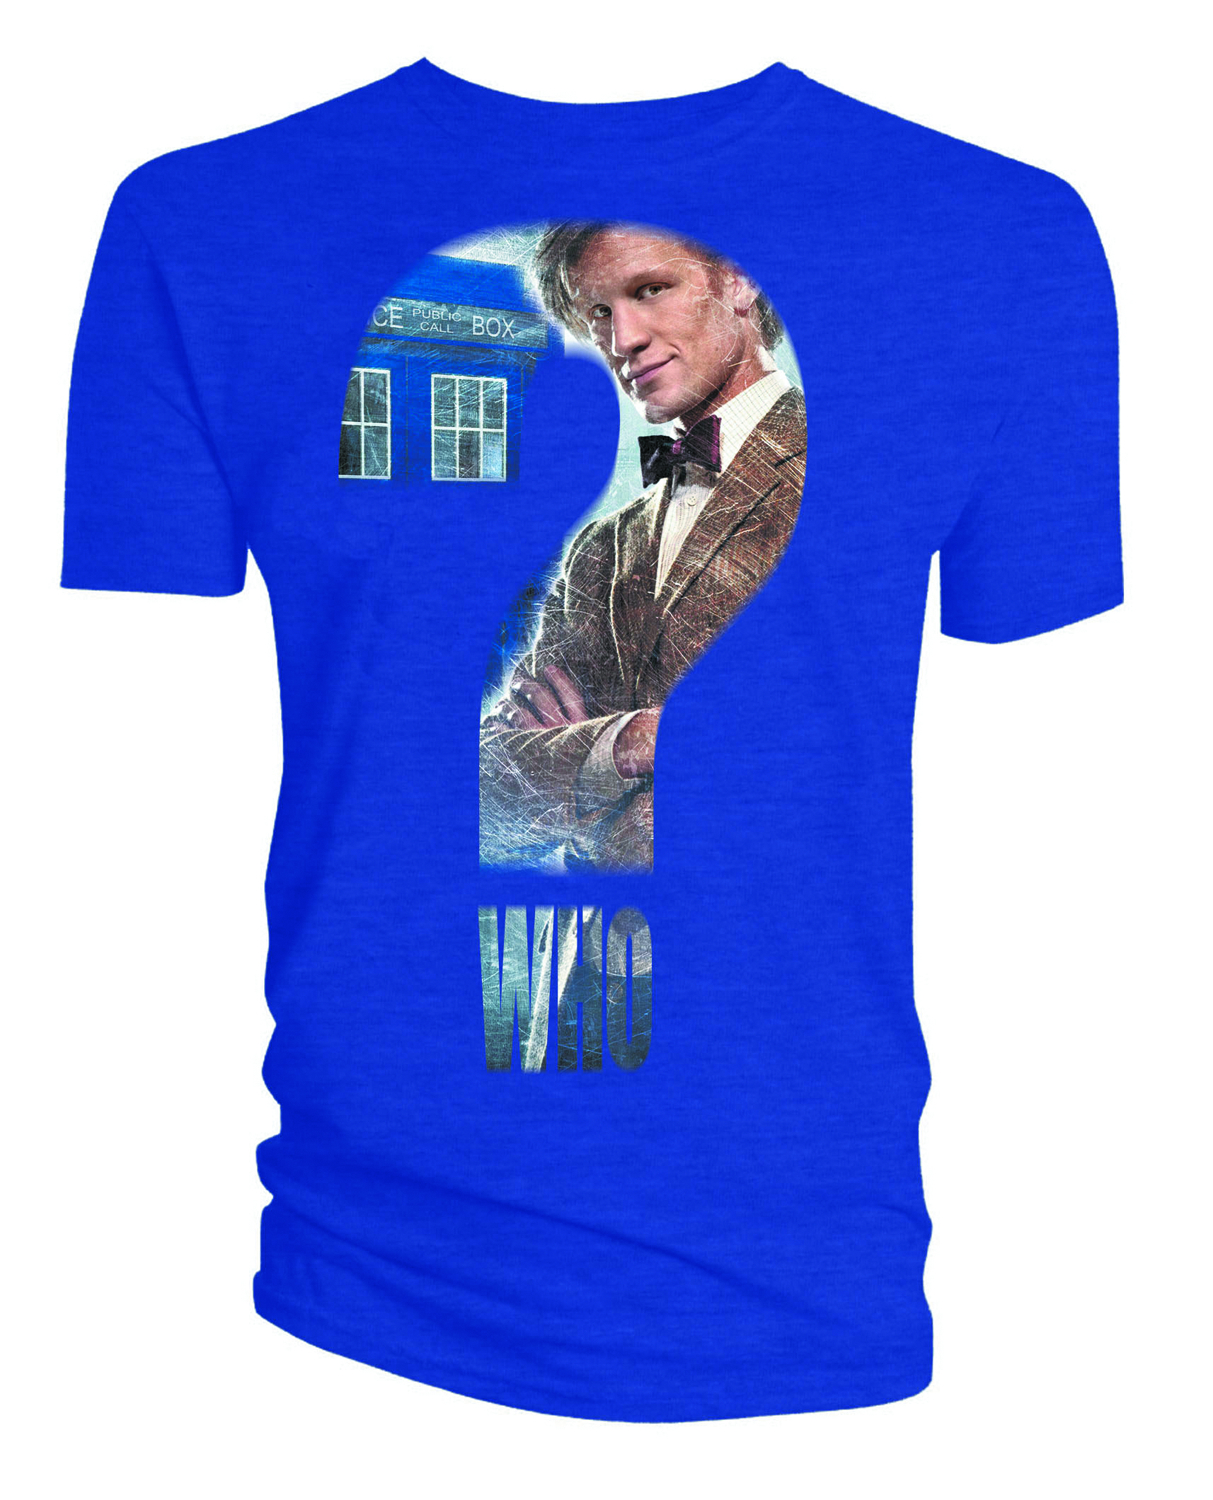 DOCTOR WHO QUESTION MARK BLUE T/S SM